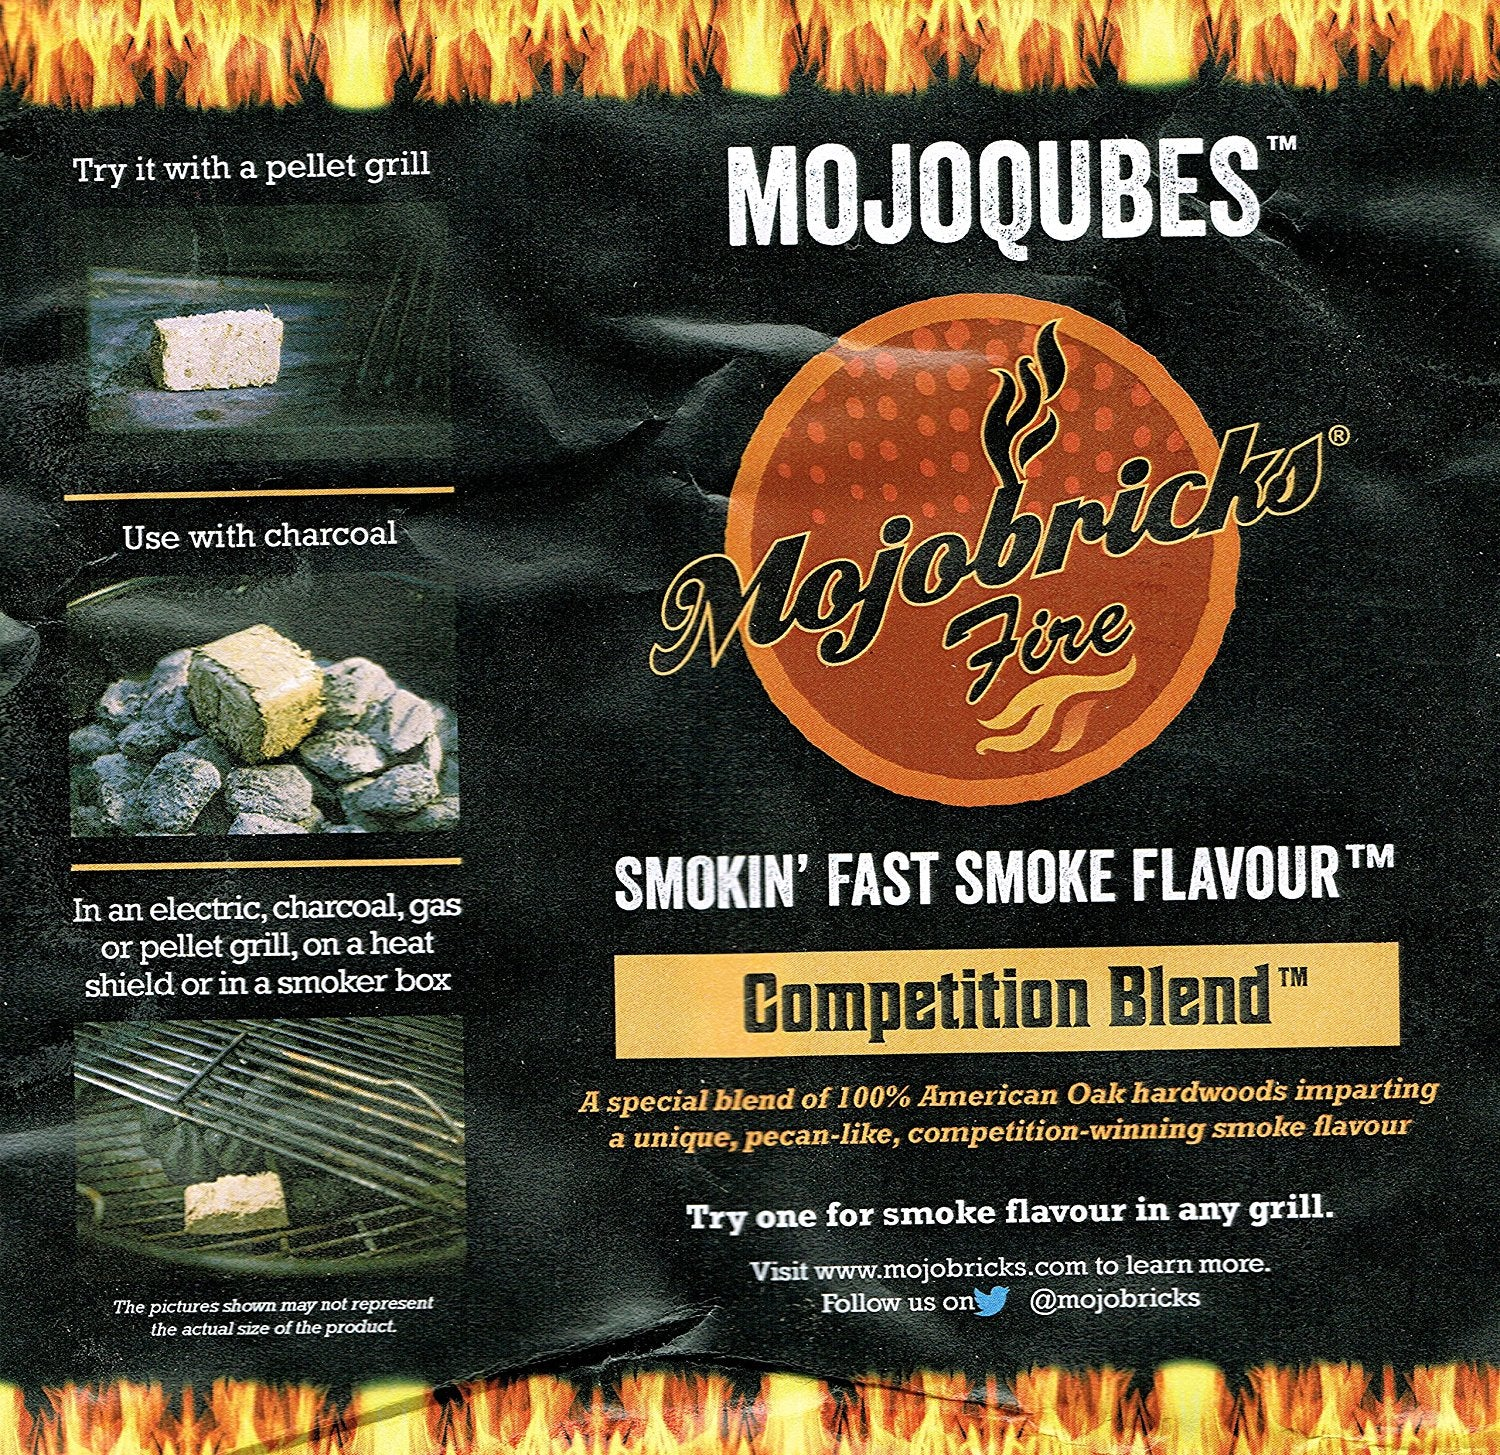 Mojobricks Mojoqubes - Competition Blend